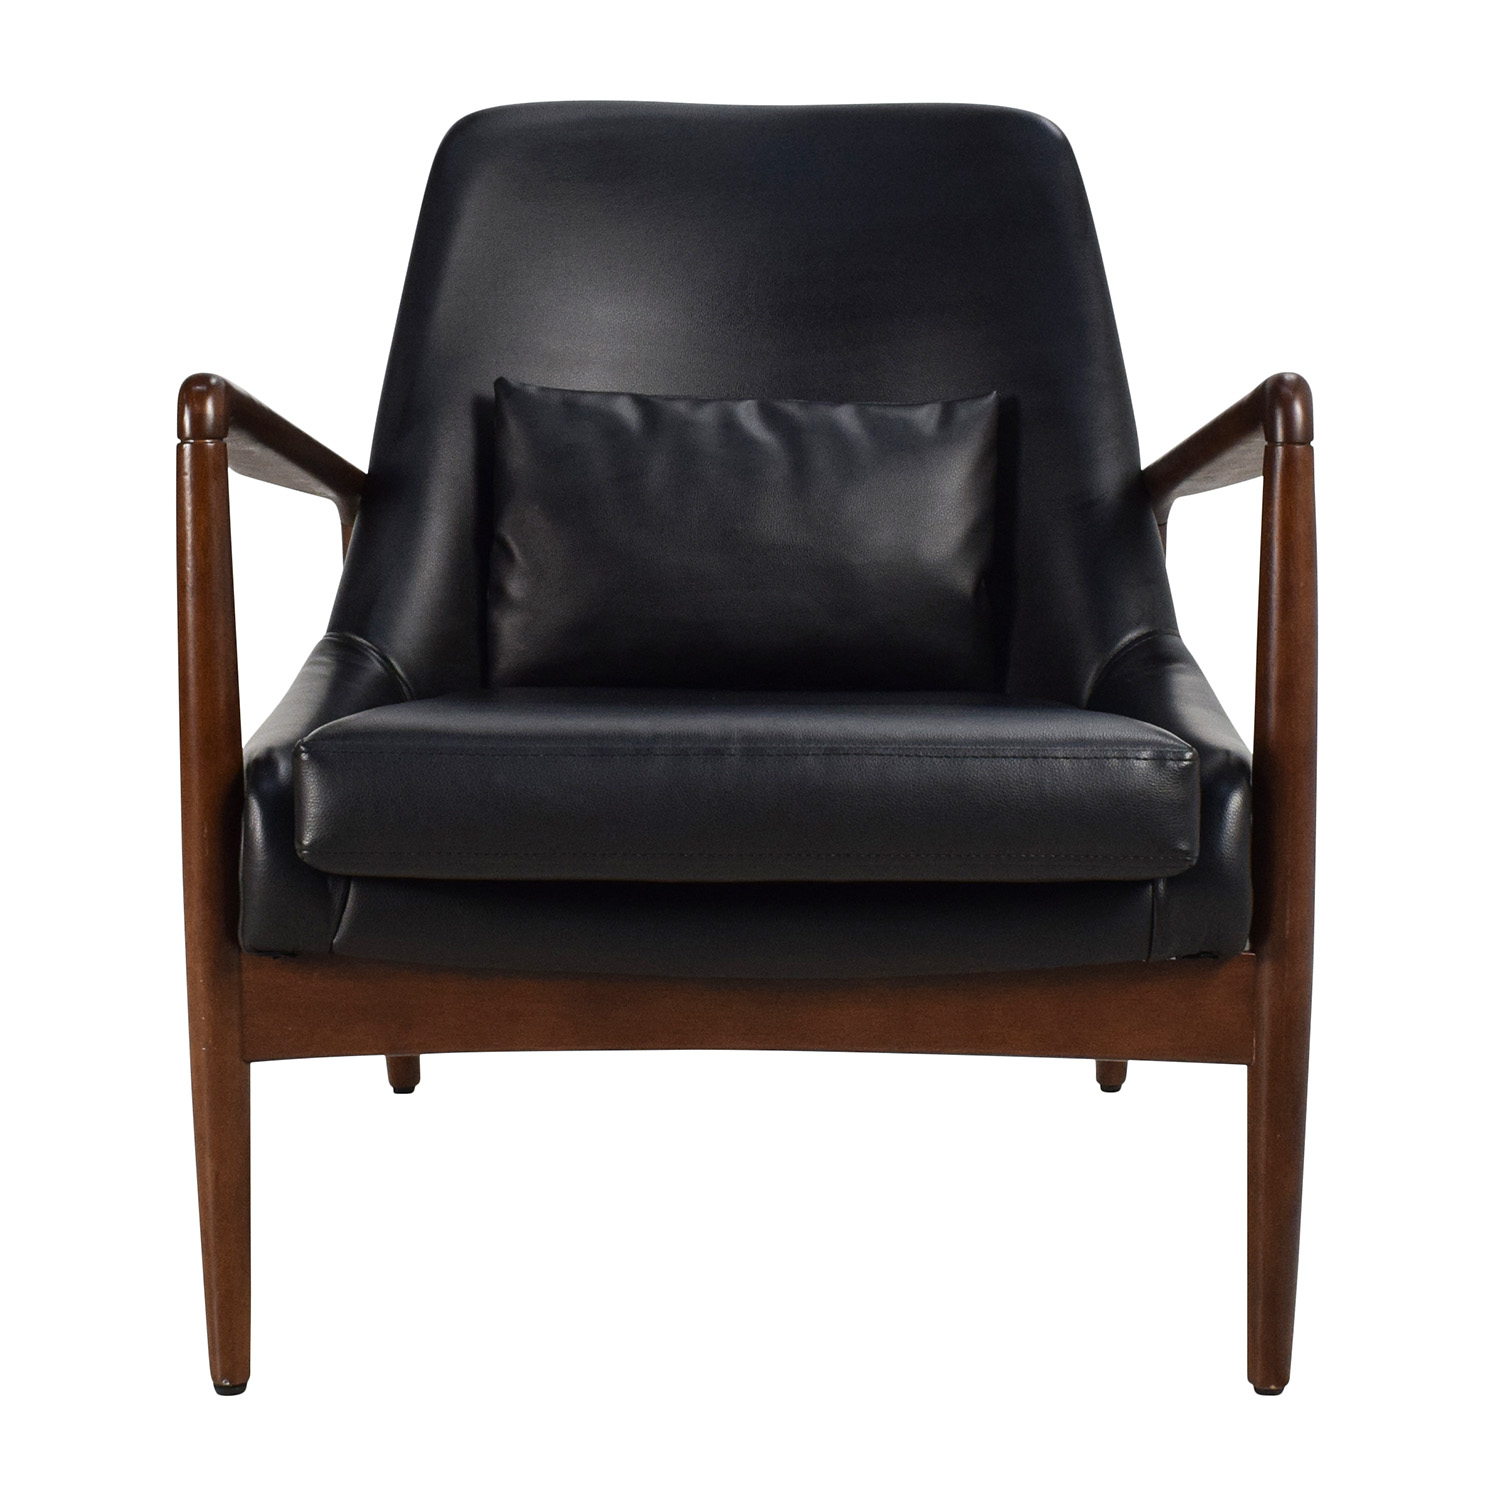 Leather Lounge 62 Off Black Leather Lounge Chair Chairs